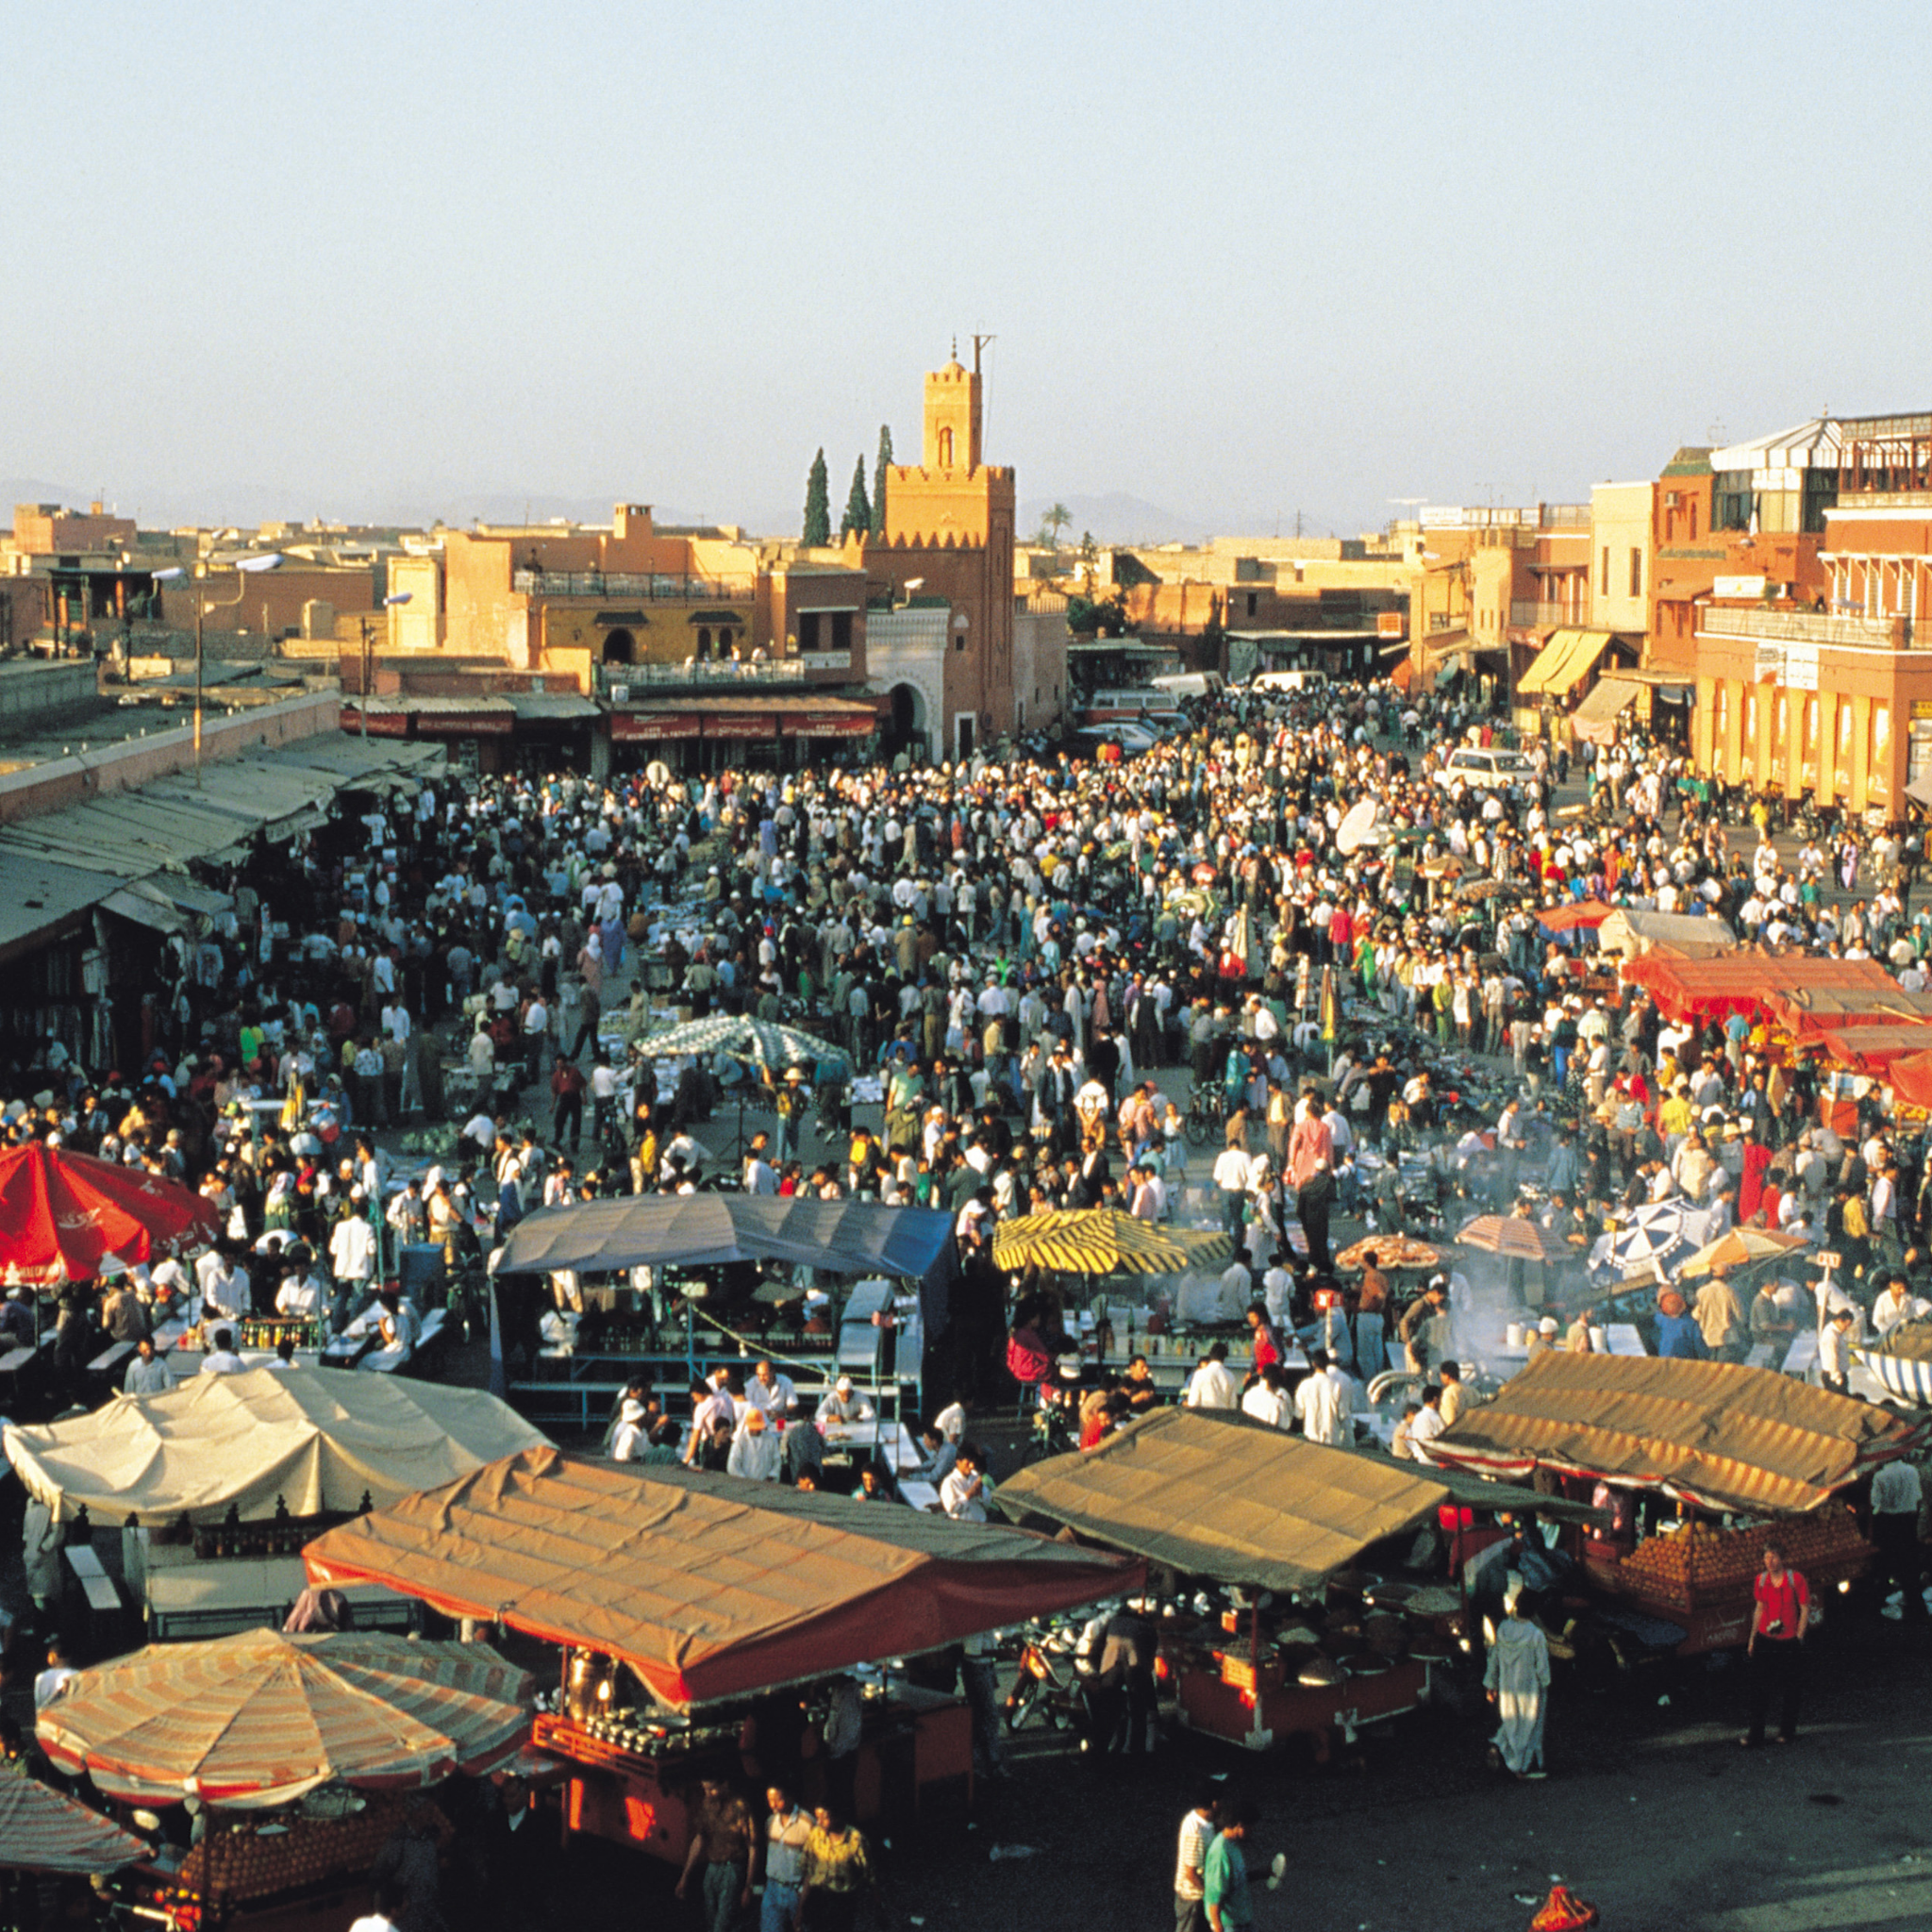 Jemaa el Fna 5 places to visit in Marrakech Morocco